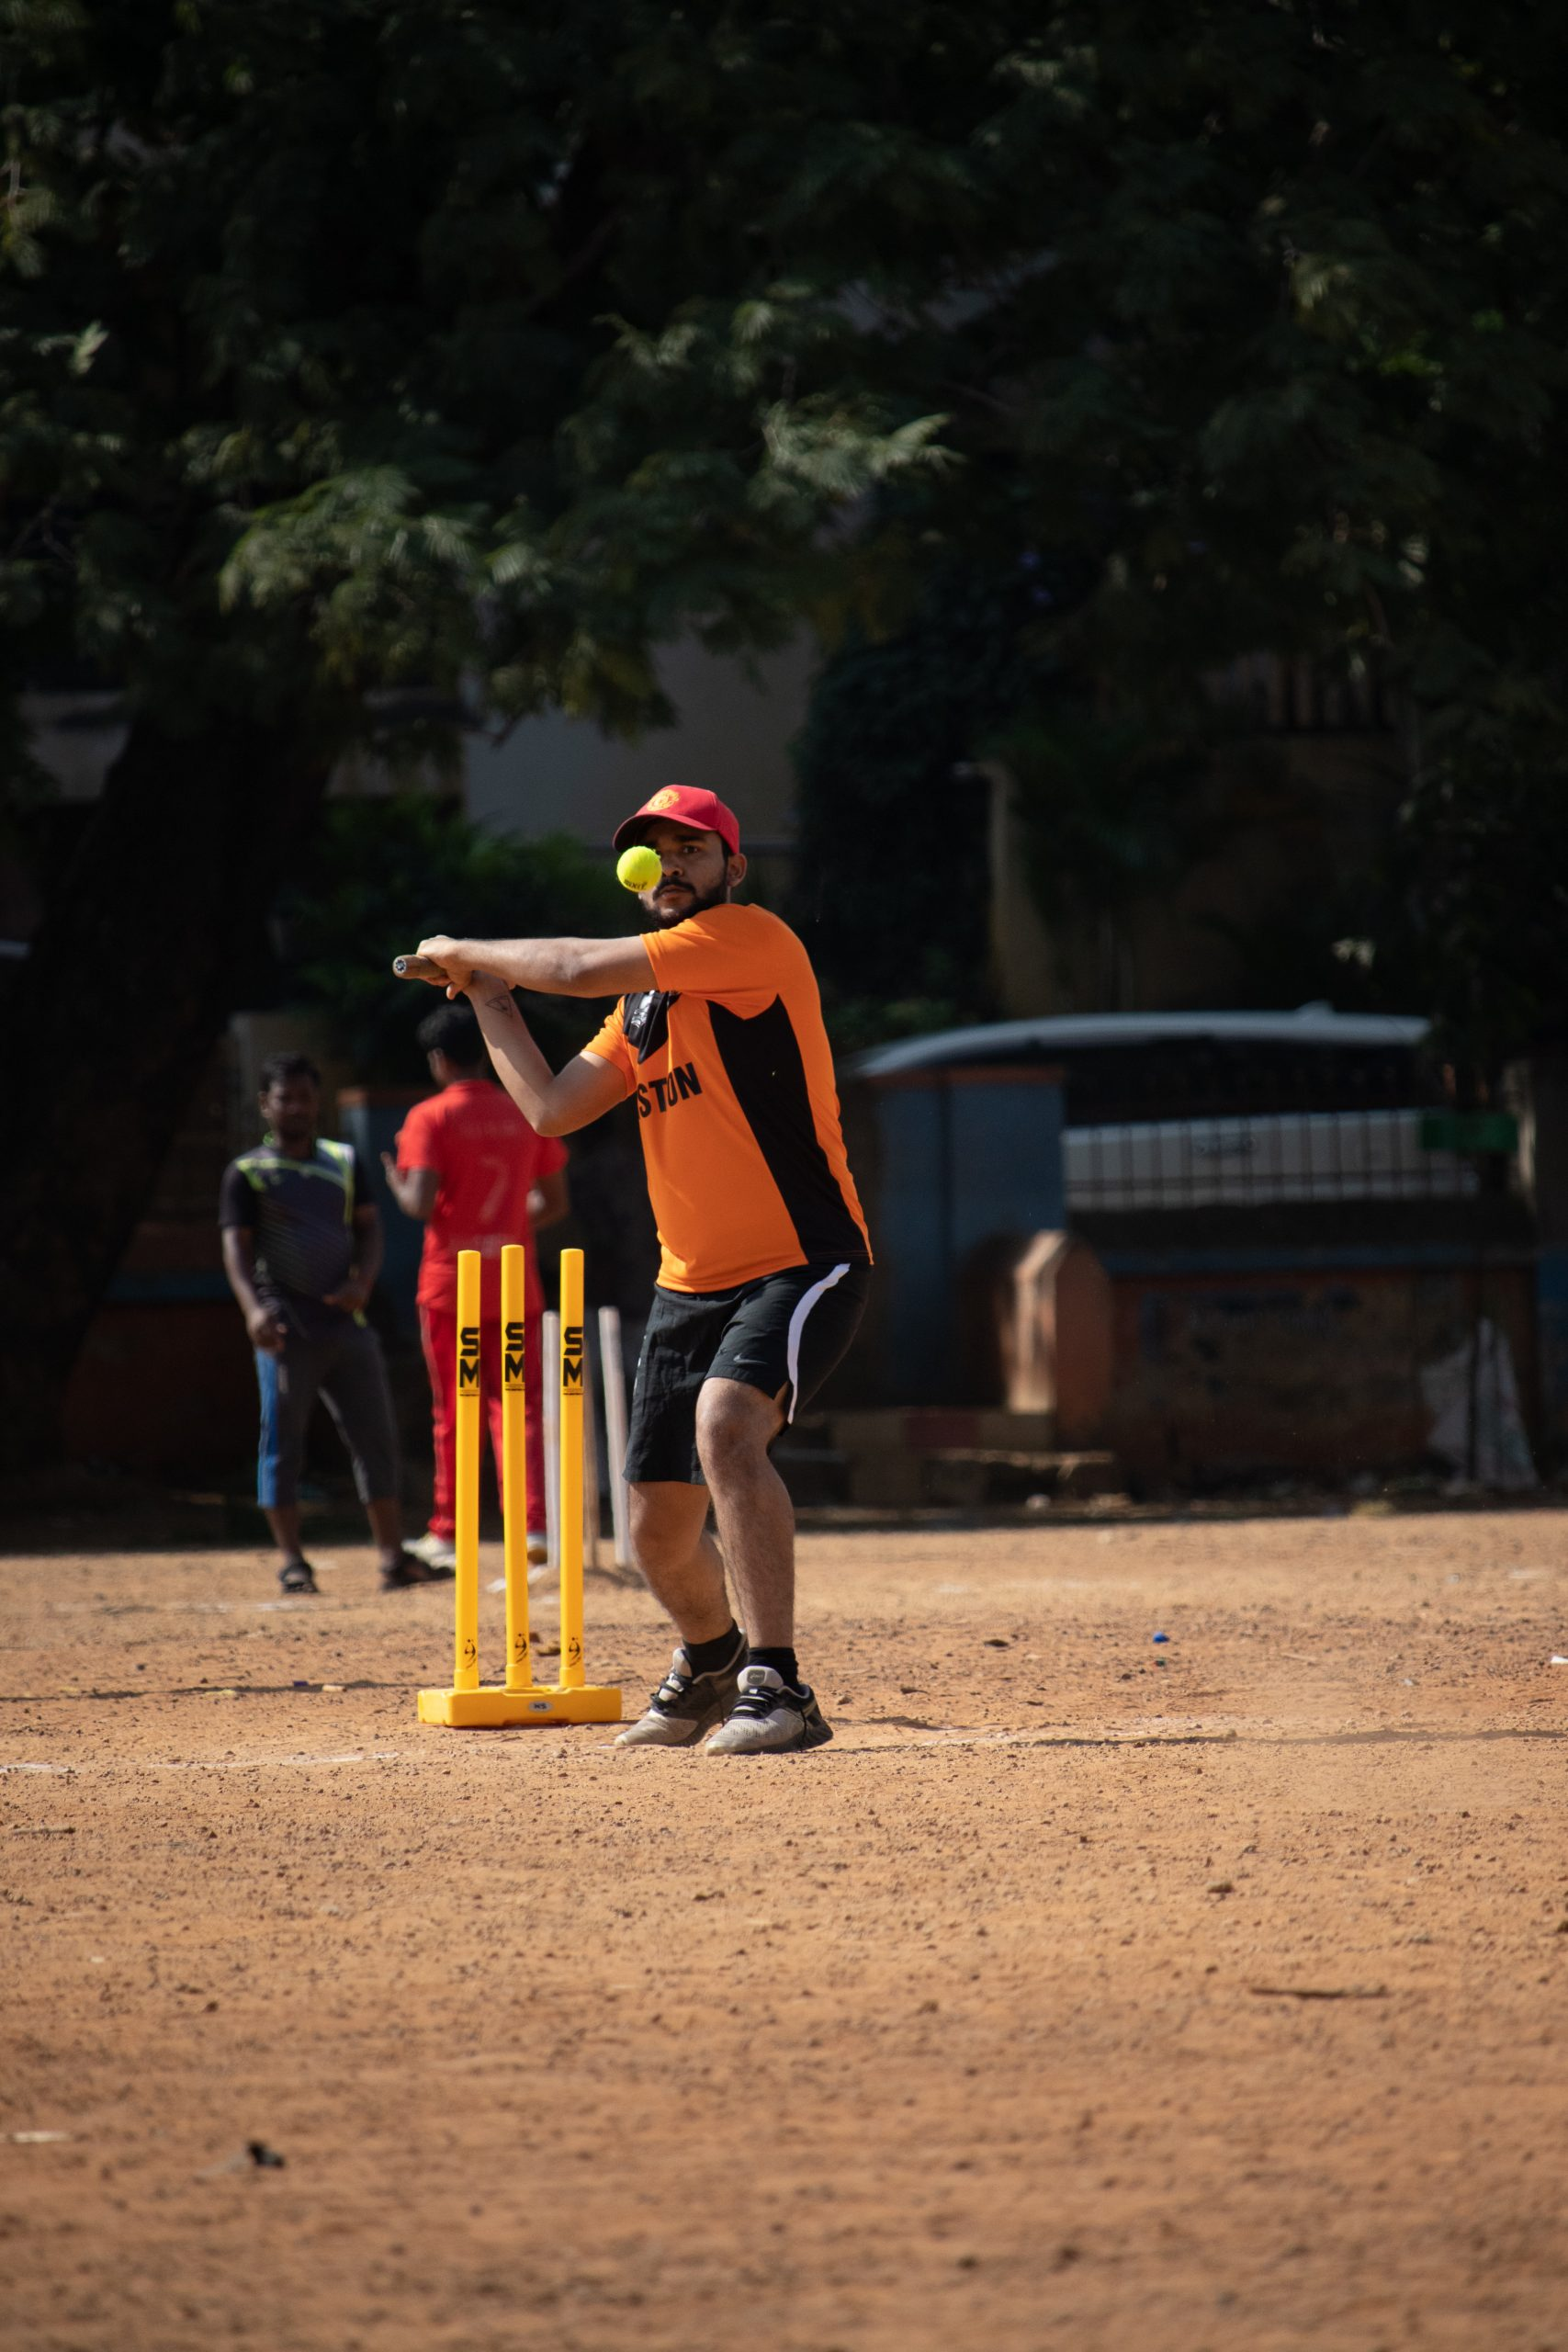 Batsman about to play pull shot